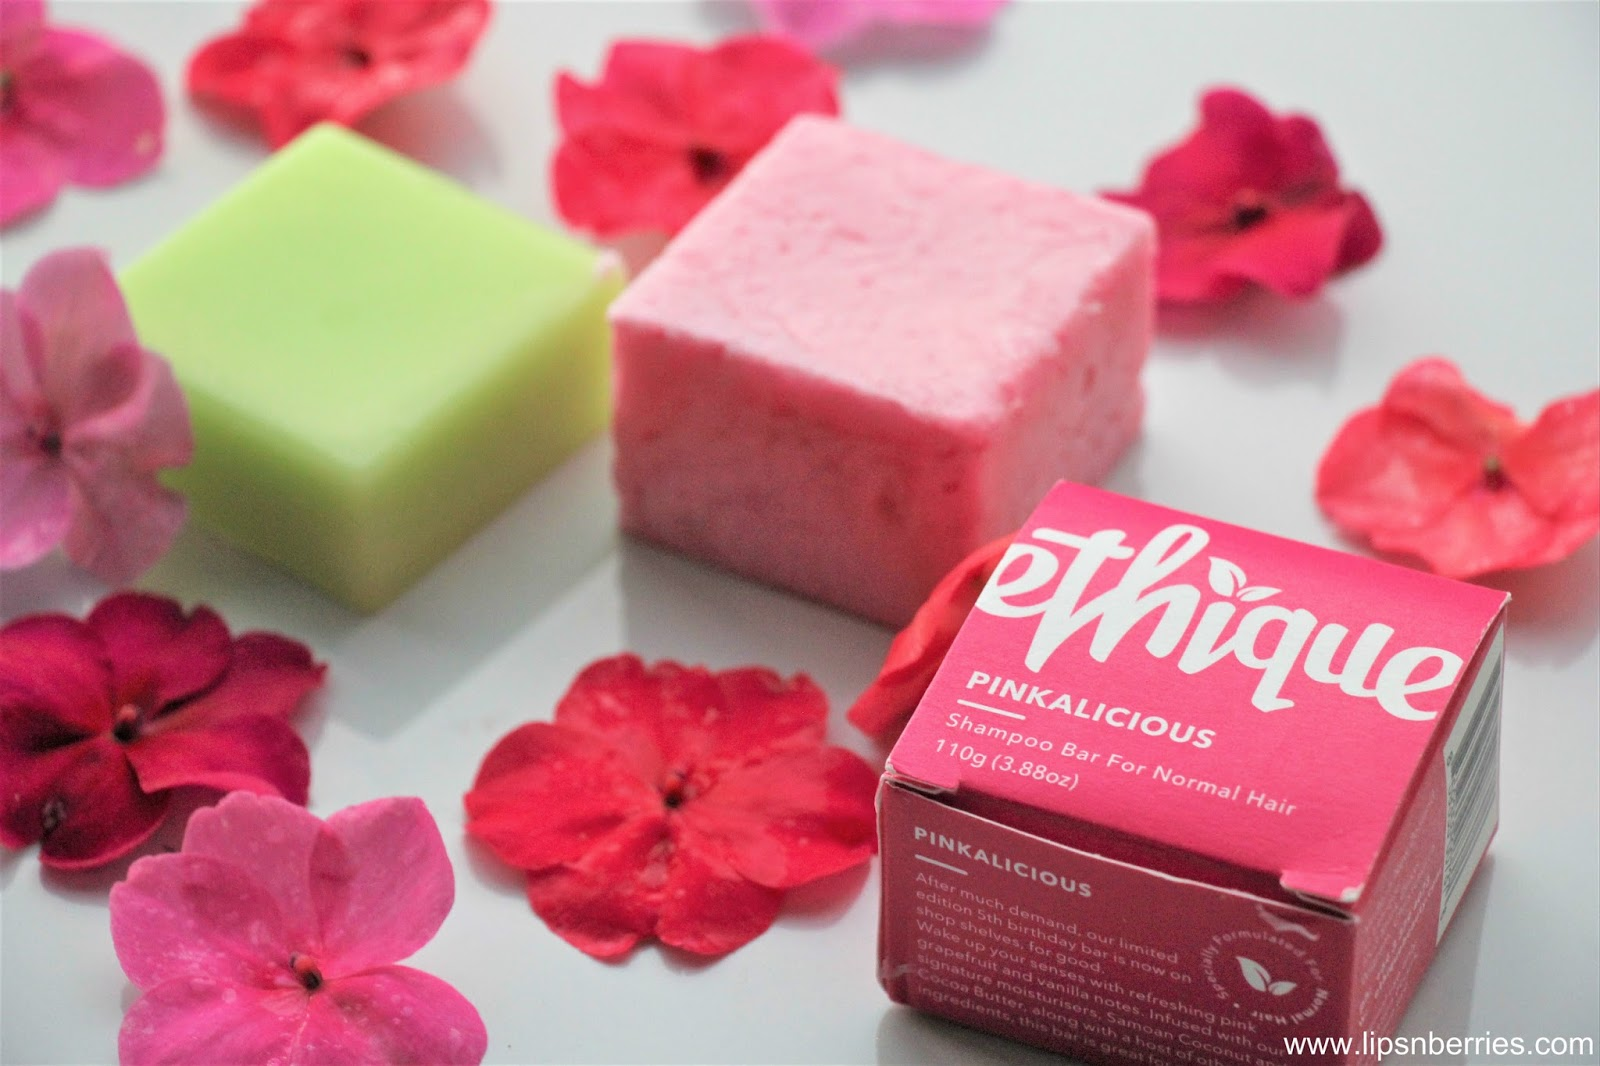 Ethique Pinkalicious shampoo bar review.jpg